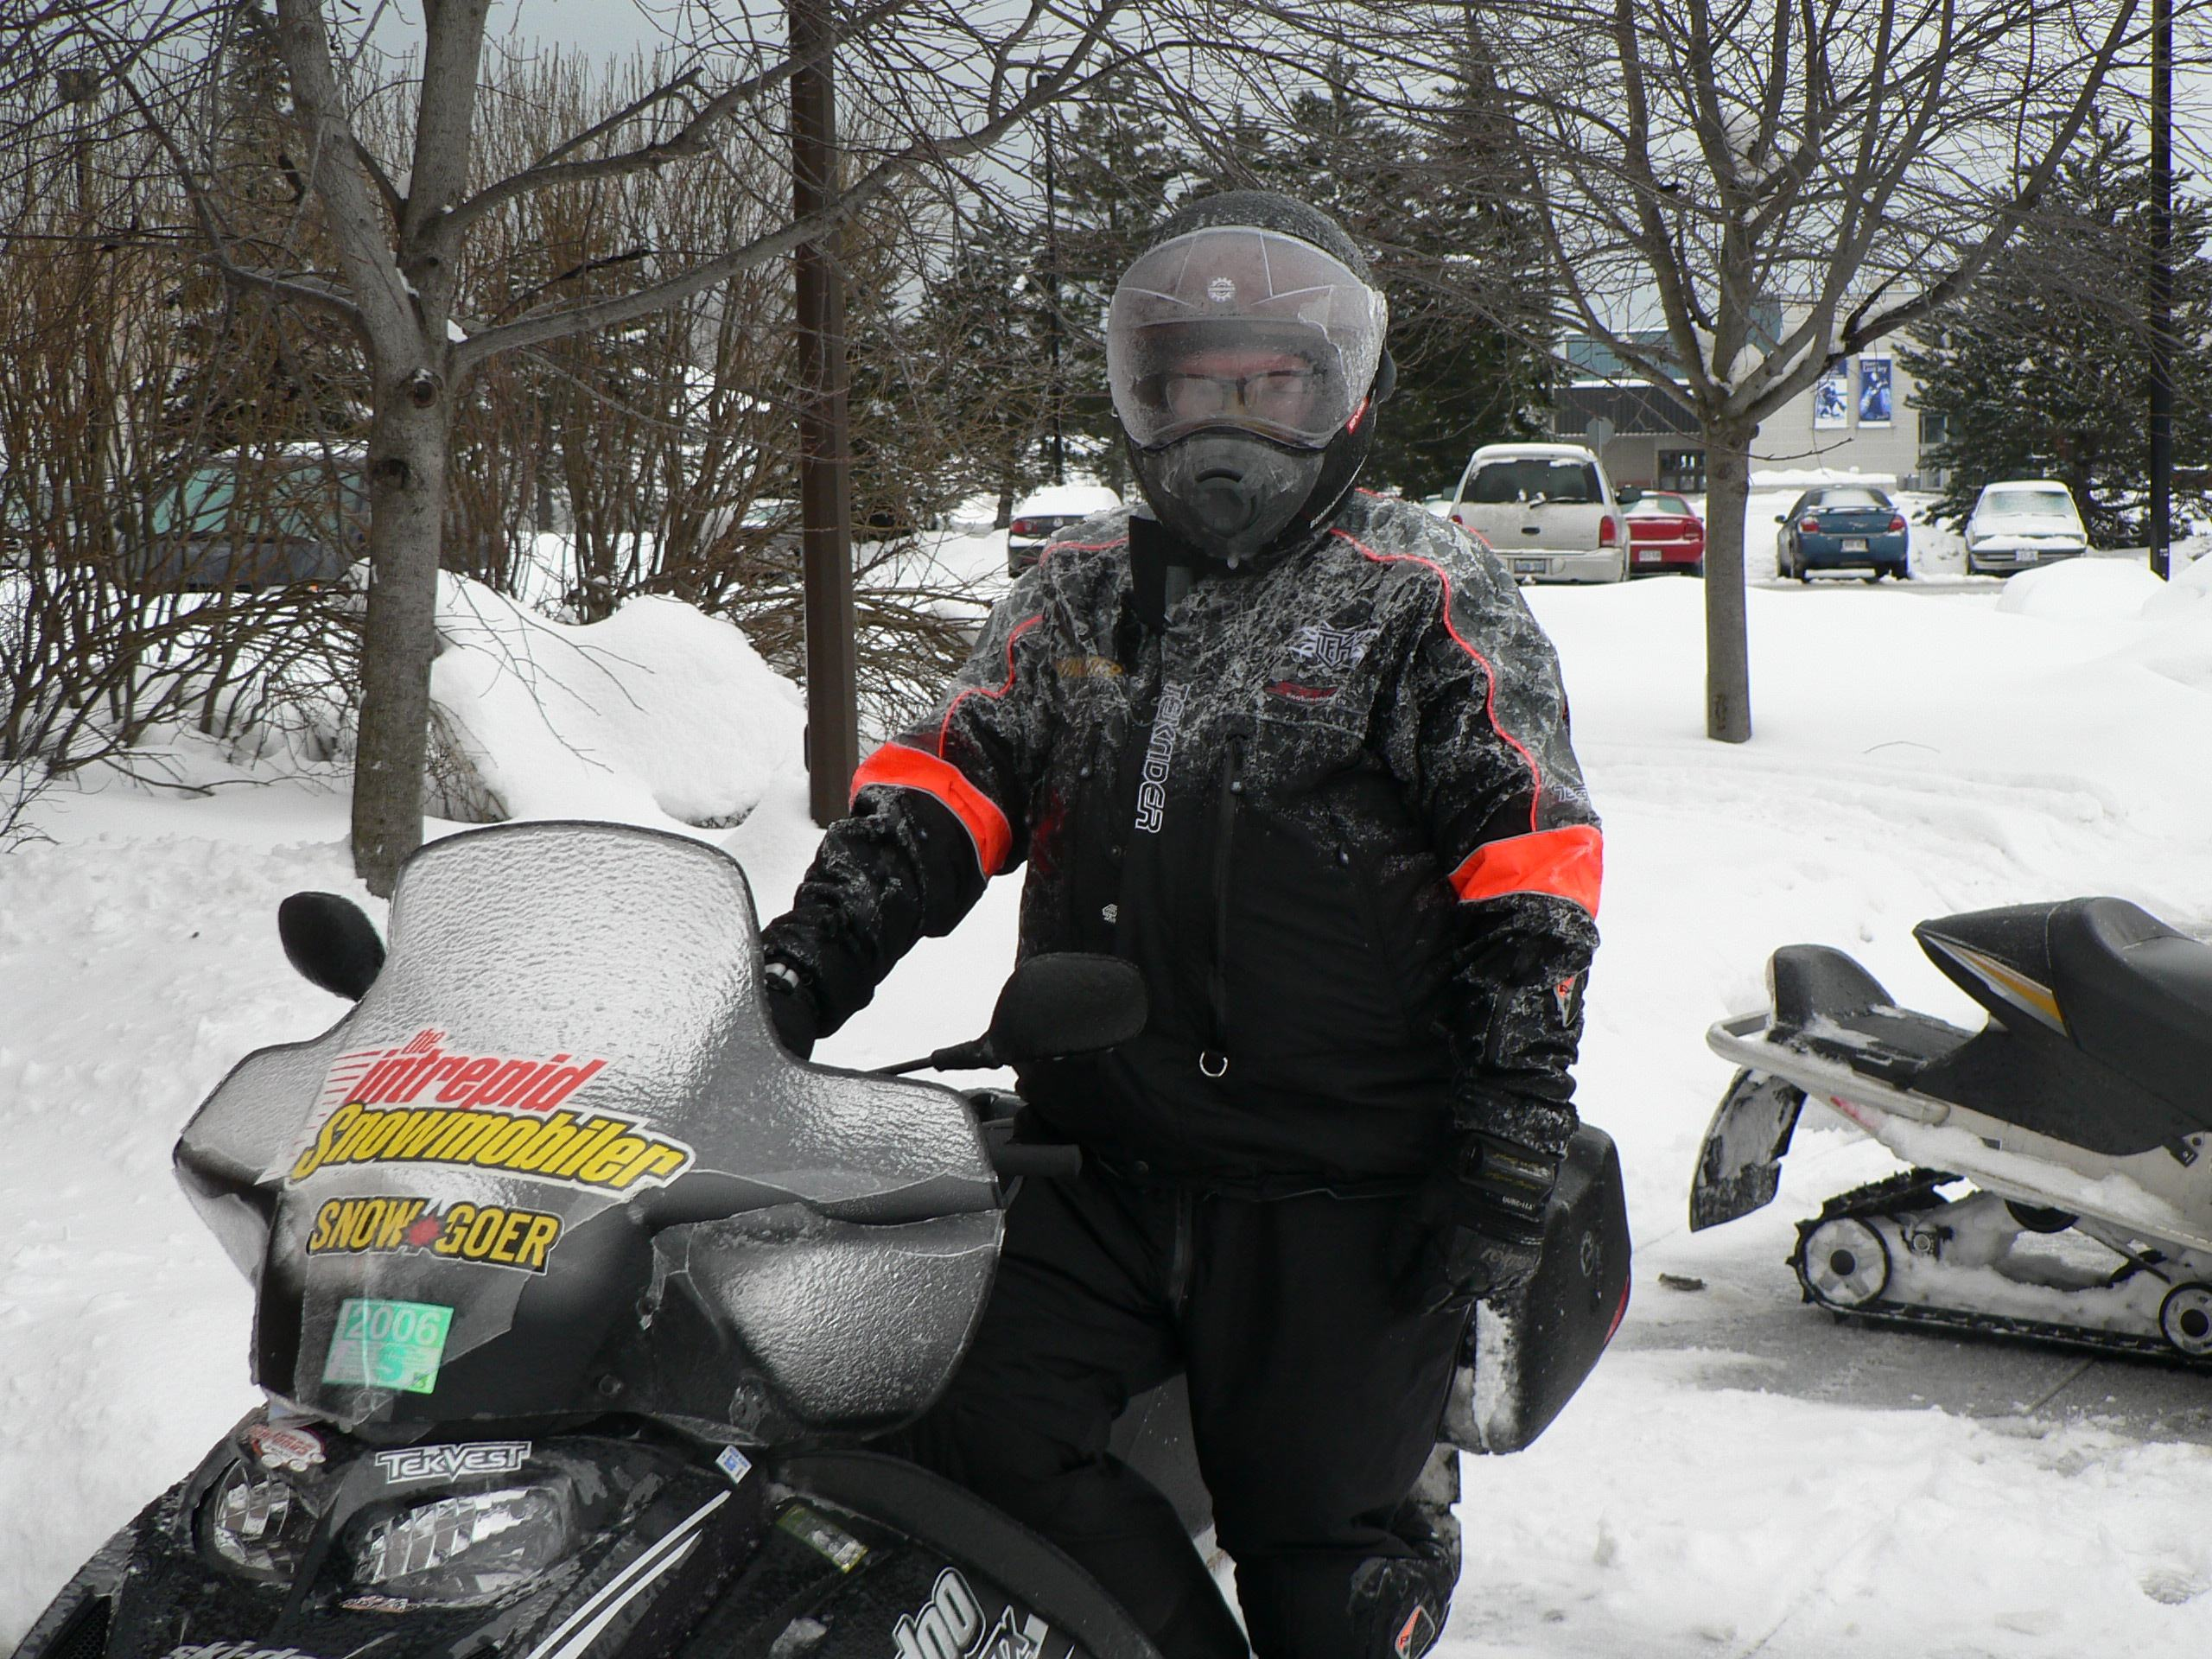 Snowmobile Memories of Canadian Trail Riding